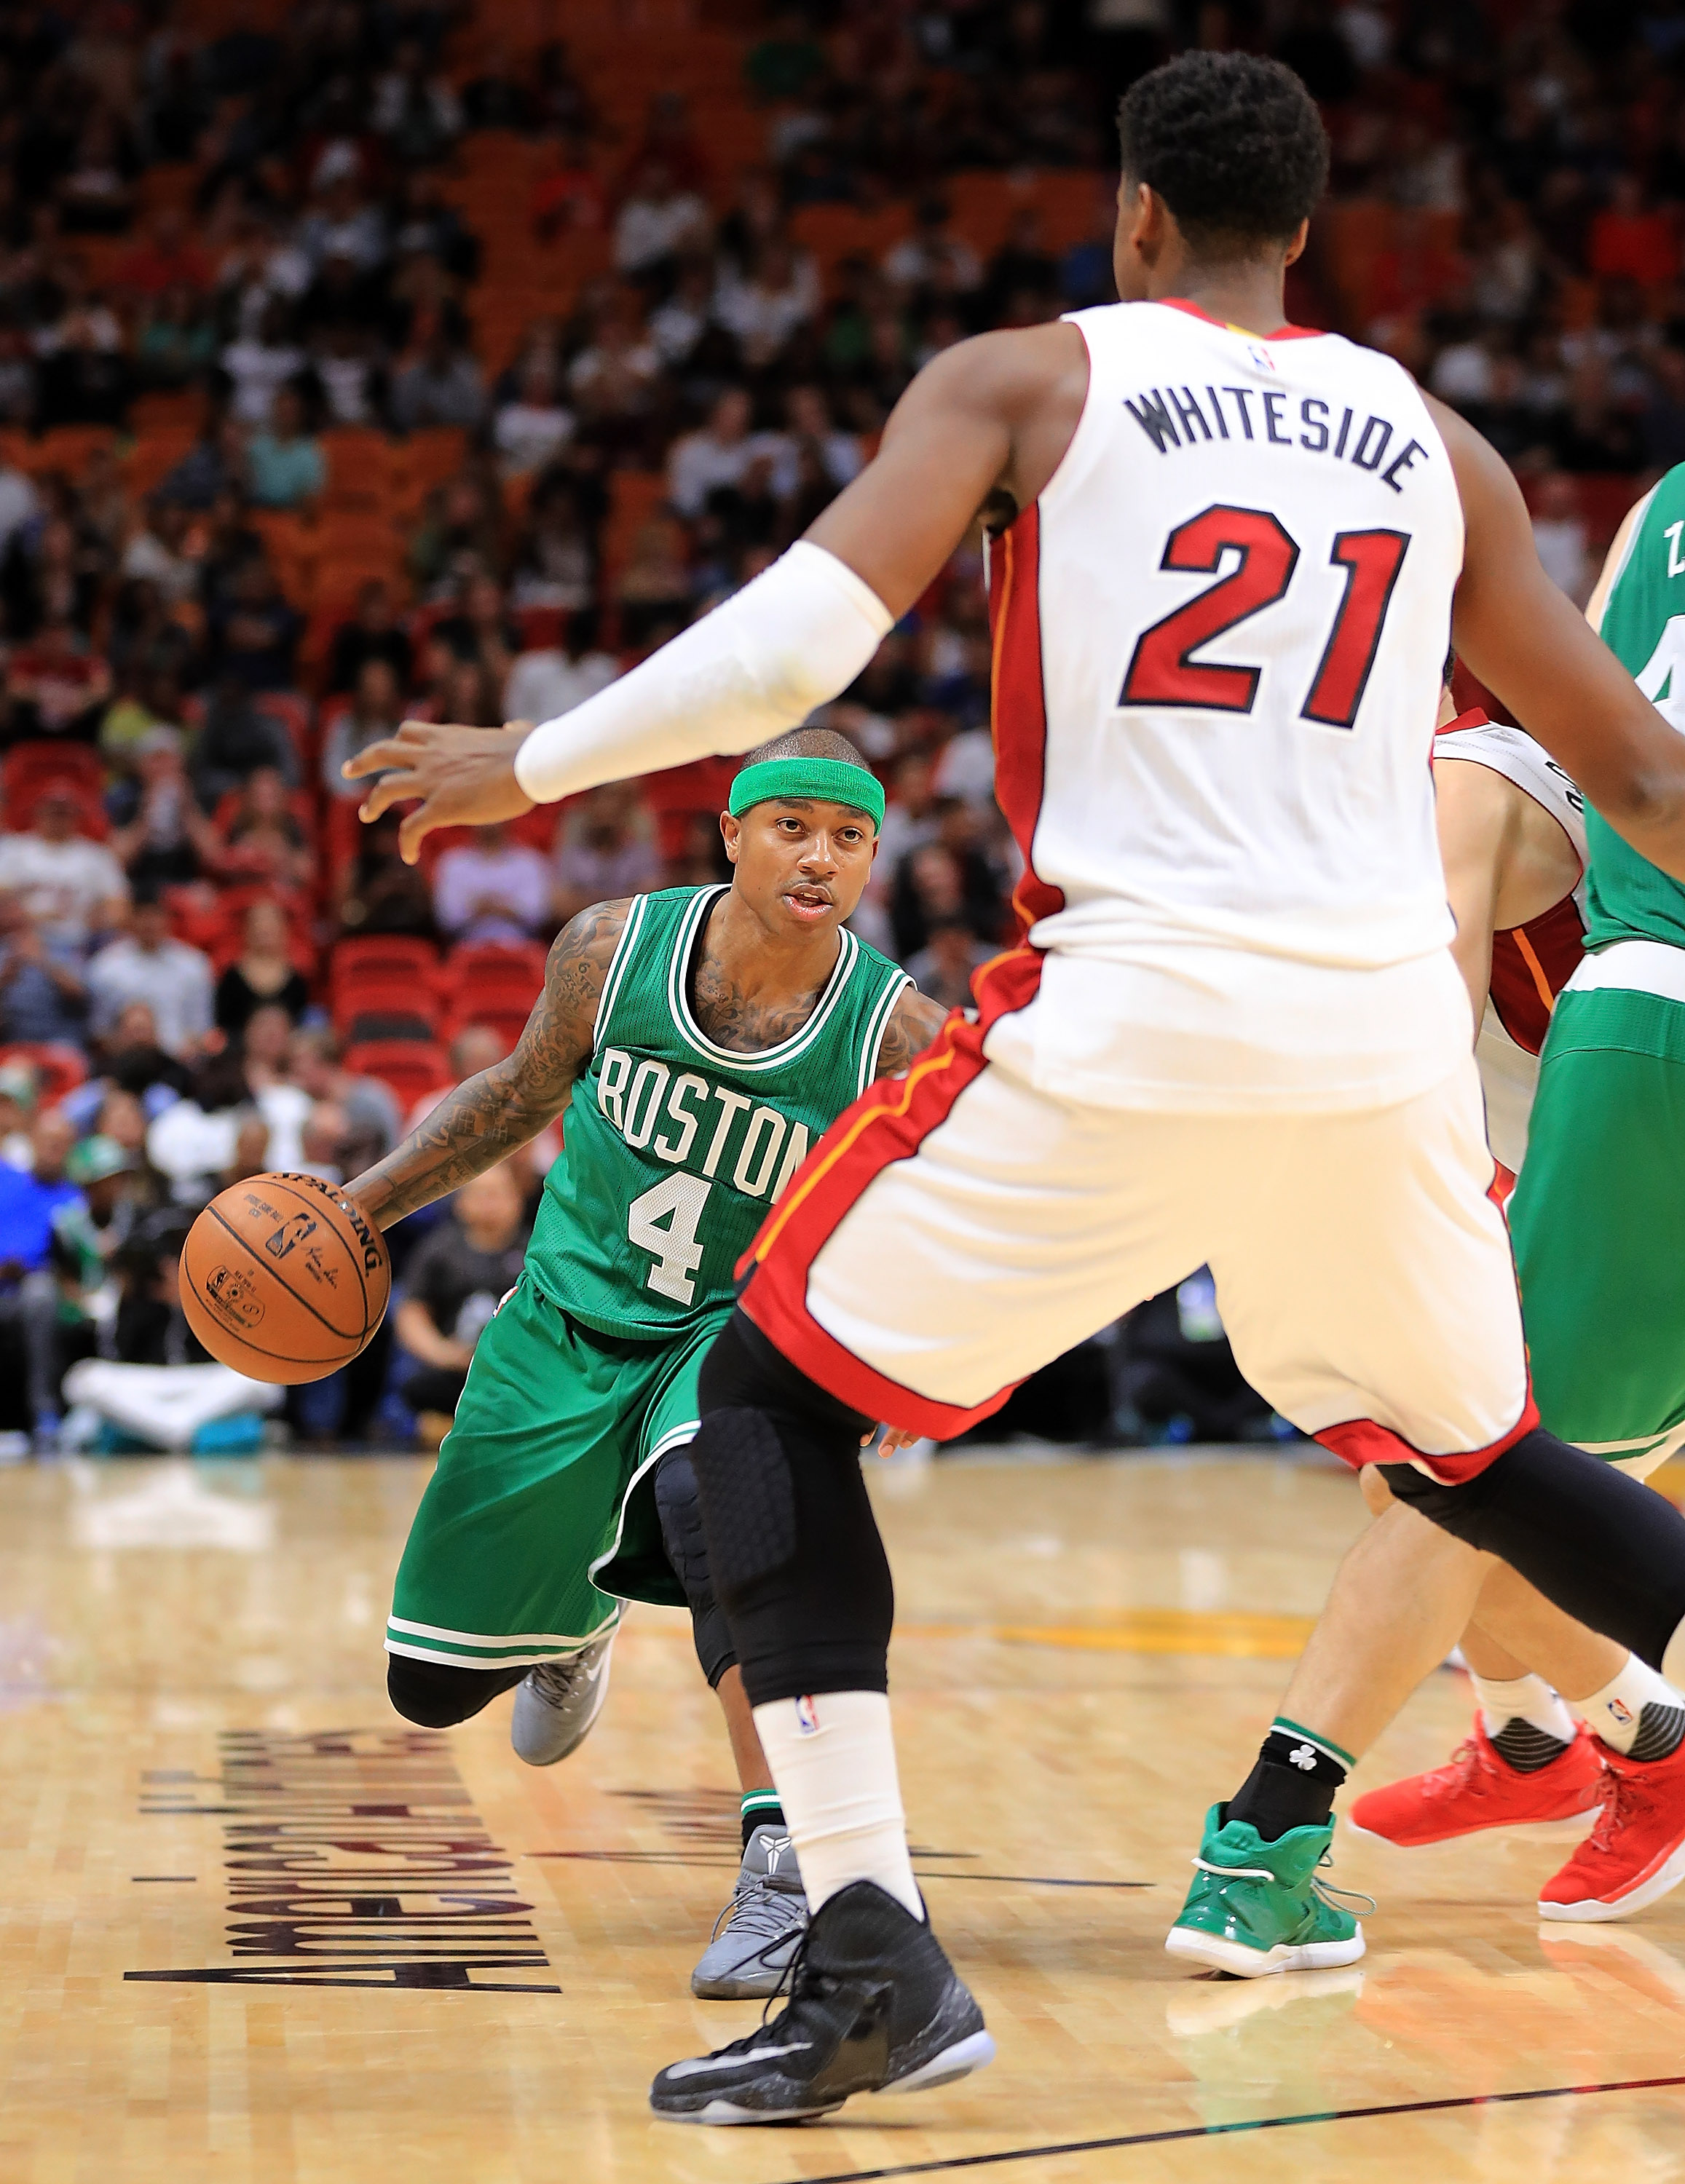 Isaiah Thomas #4 of the Boston Celtics drives on Hassan Whiteside #21 of the Miami Heat during a game at American Airlines Arena on November 28, 2016 in Miami, Florida.